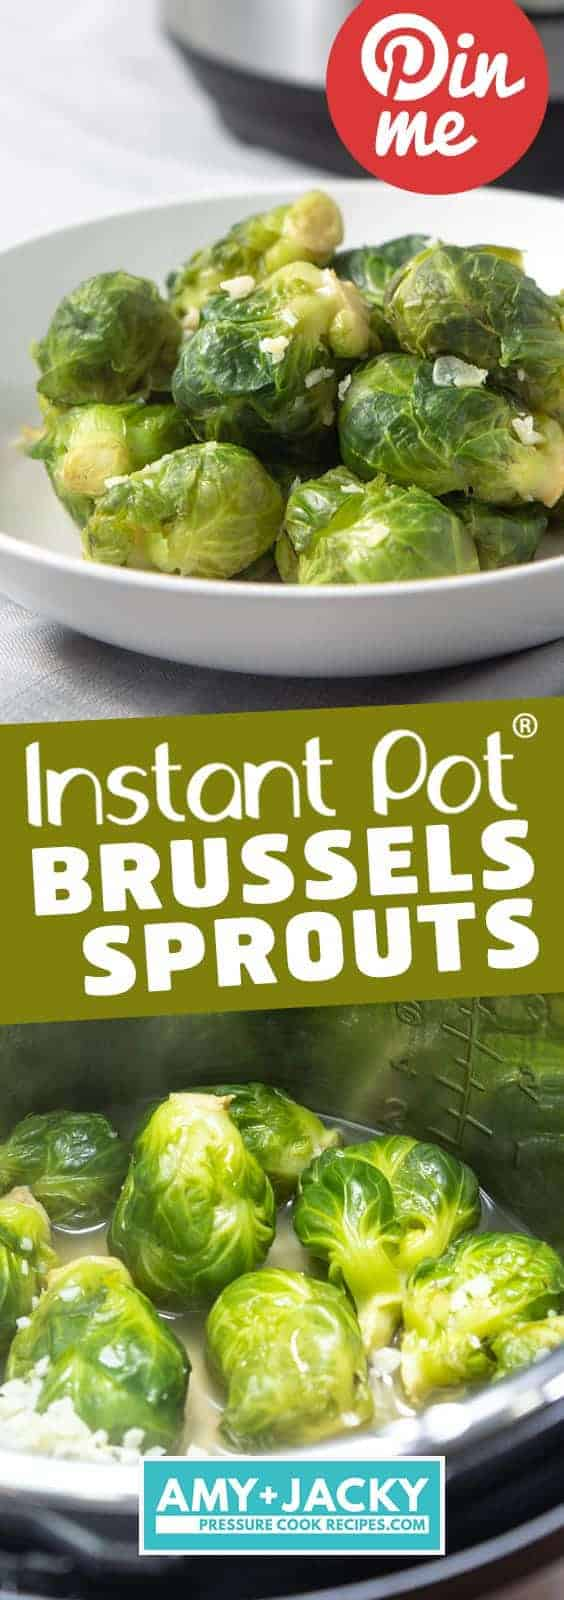 Instant Pot Brussels Sprouts | Pressure Cooker Brussels Sprouts | Instapot Brussel Sprouts | Instant Pot Vegetables | Instant Pot Side Dishes | Instant Pot Vegetarian | Instant Pot Recipes #instantpot #vegetables #easy #healthy #side